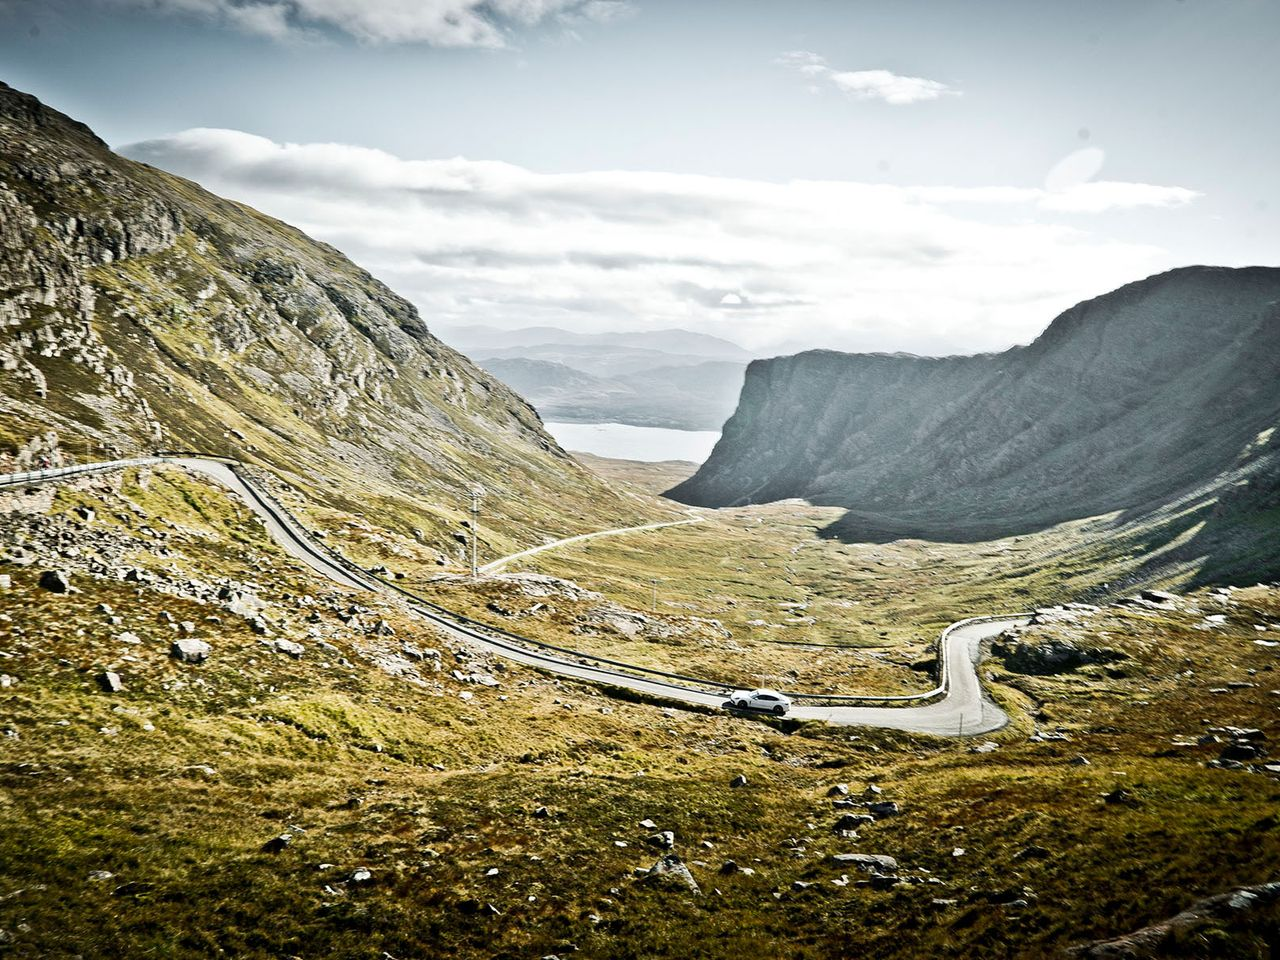 The Applecross Pass, perhaps the most beautiful part of the route.